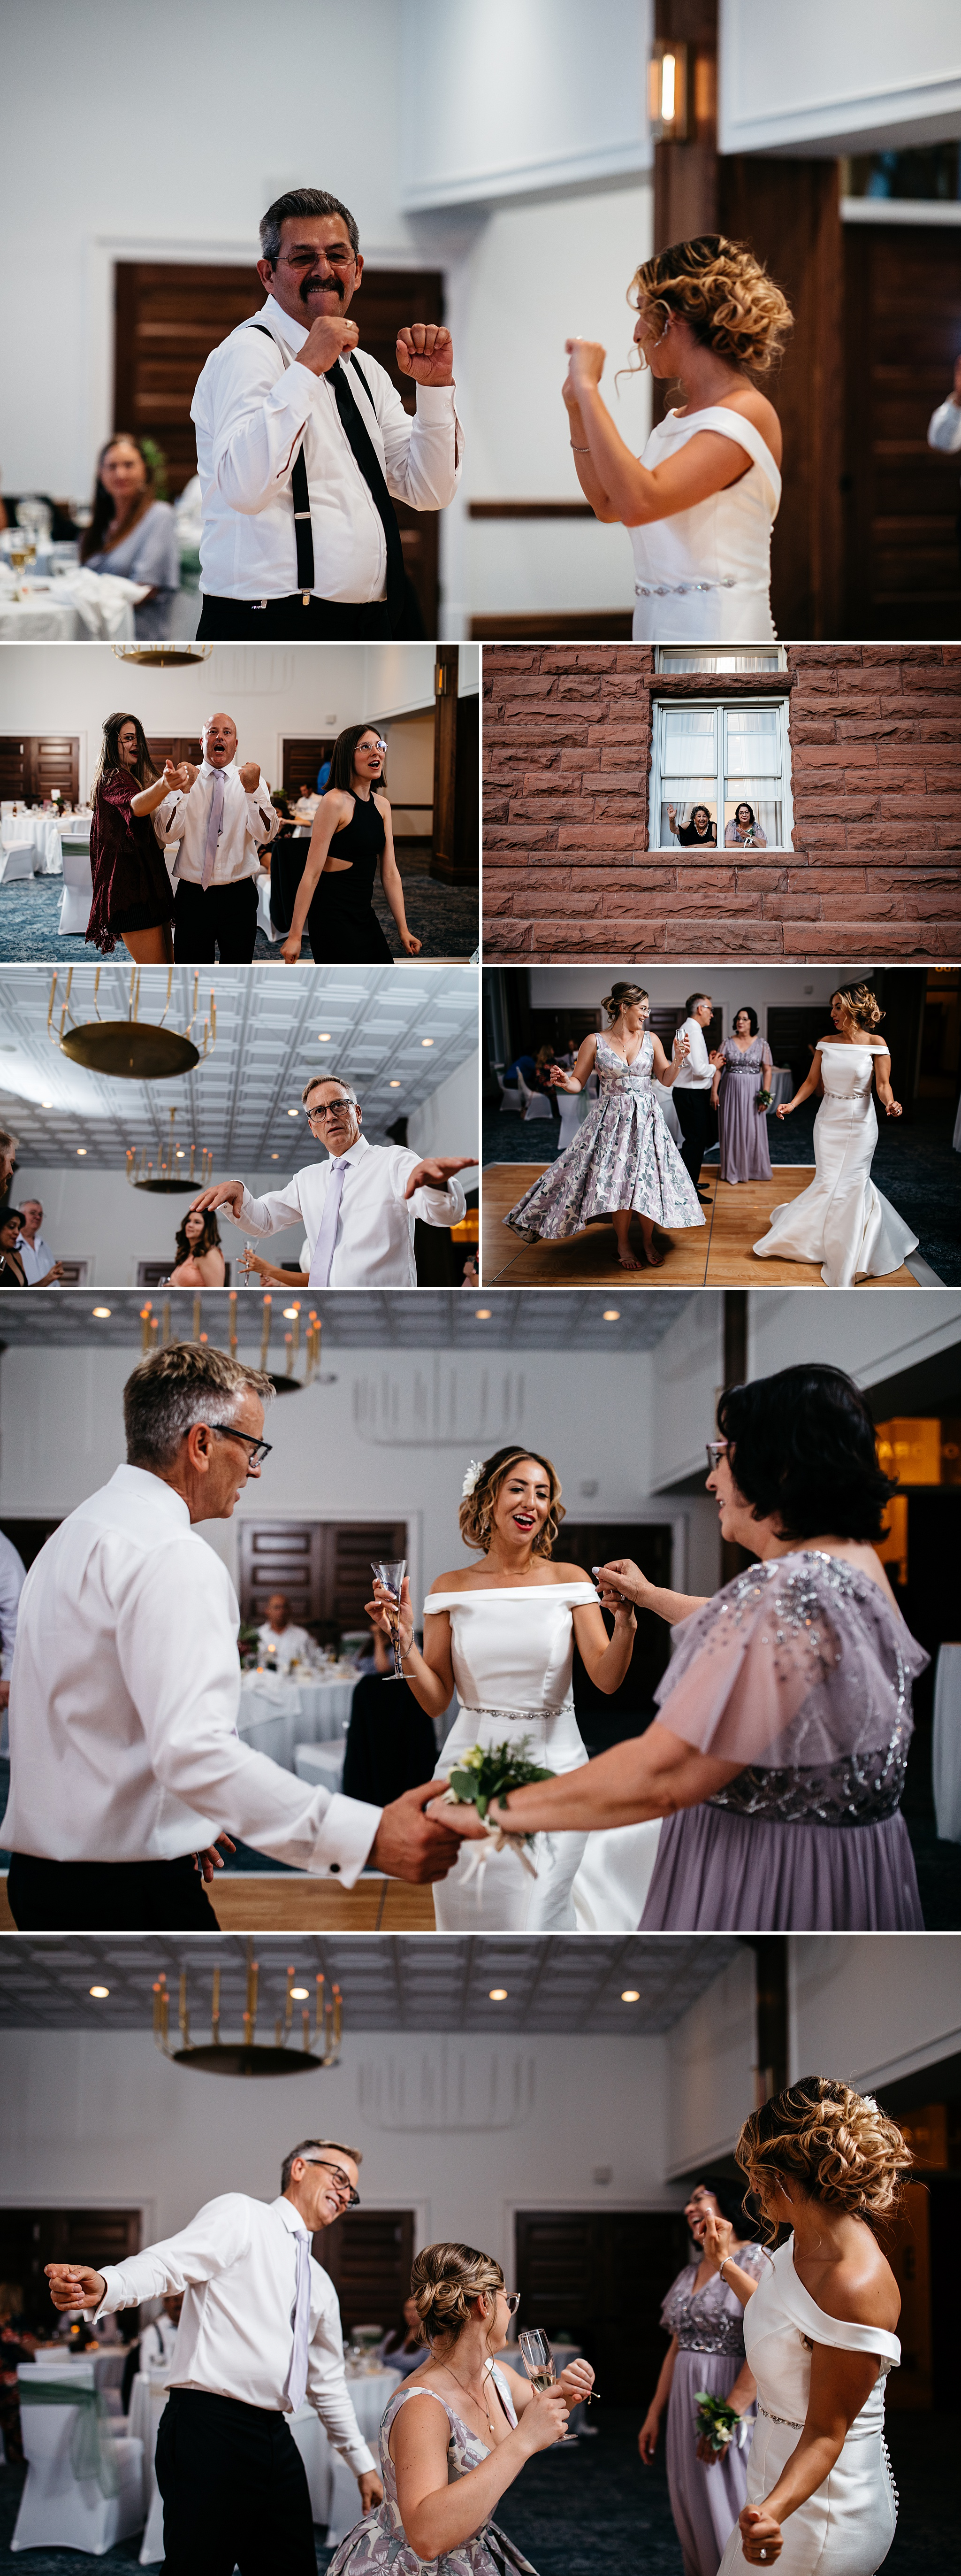 Hotel-Colorado-Wedding-Photos-Glenwood-Springs-Reception-Dancing